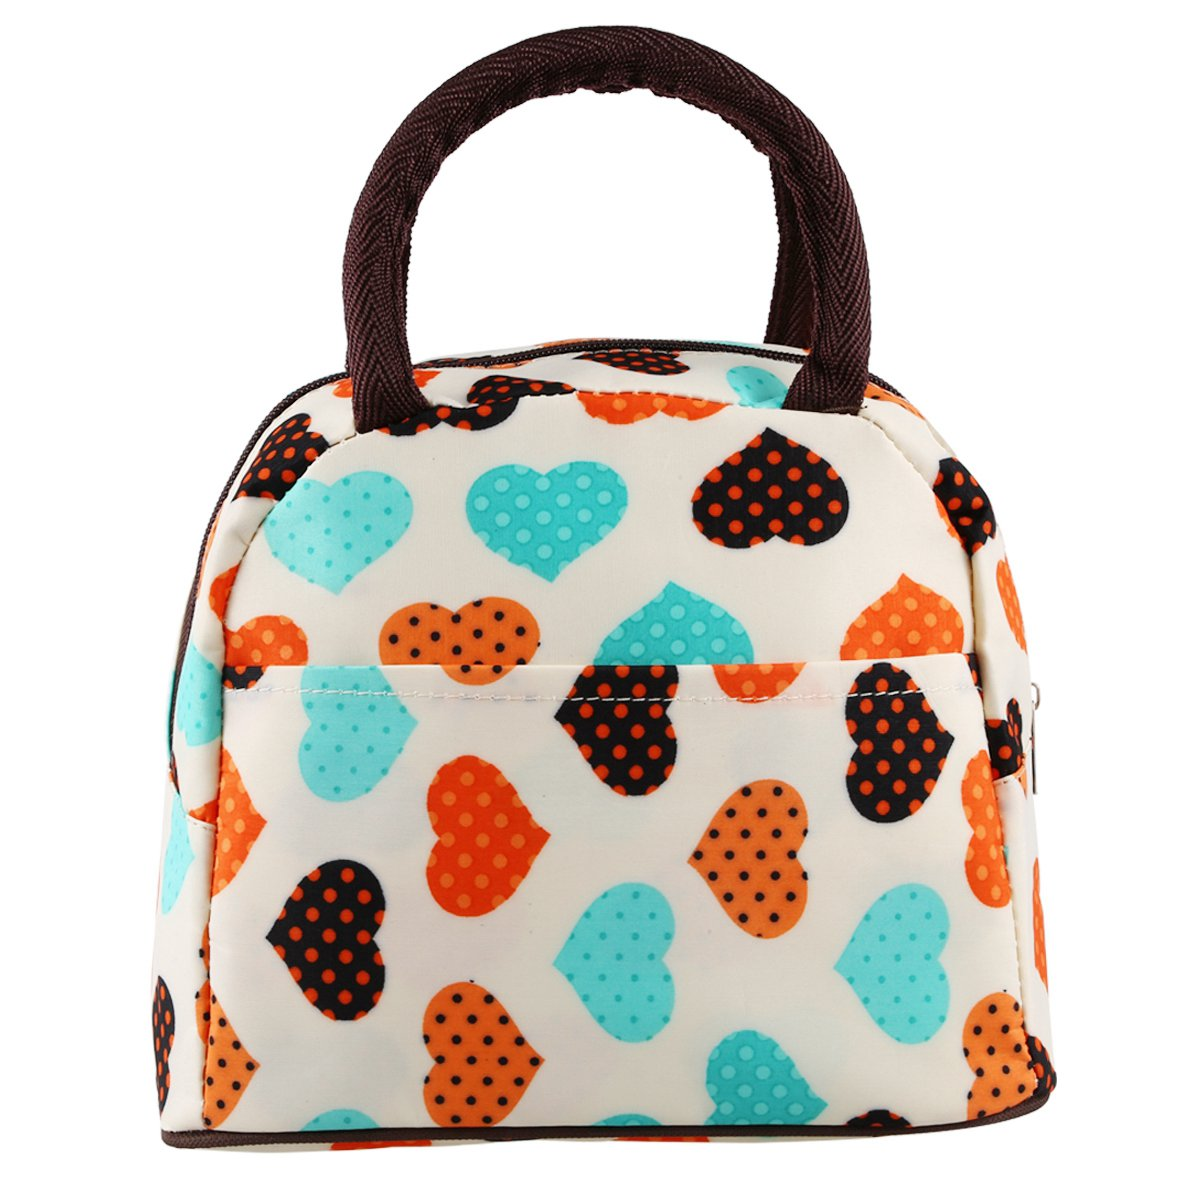 DCOS-Lunch Bag, Lovely Oxford Waterproof Canvas Lunch Box For Women Kids and Adults